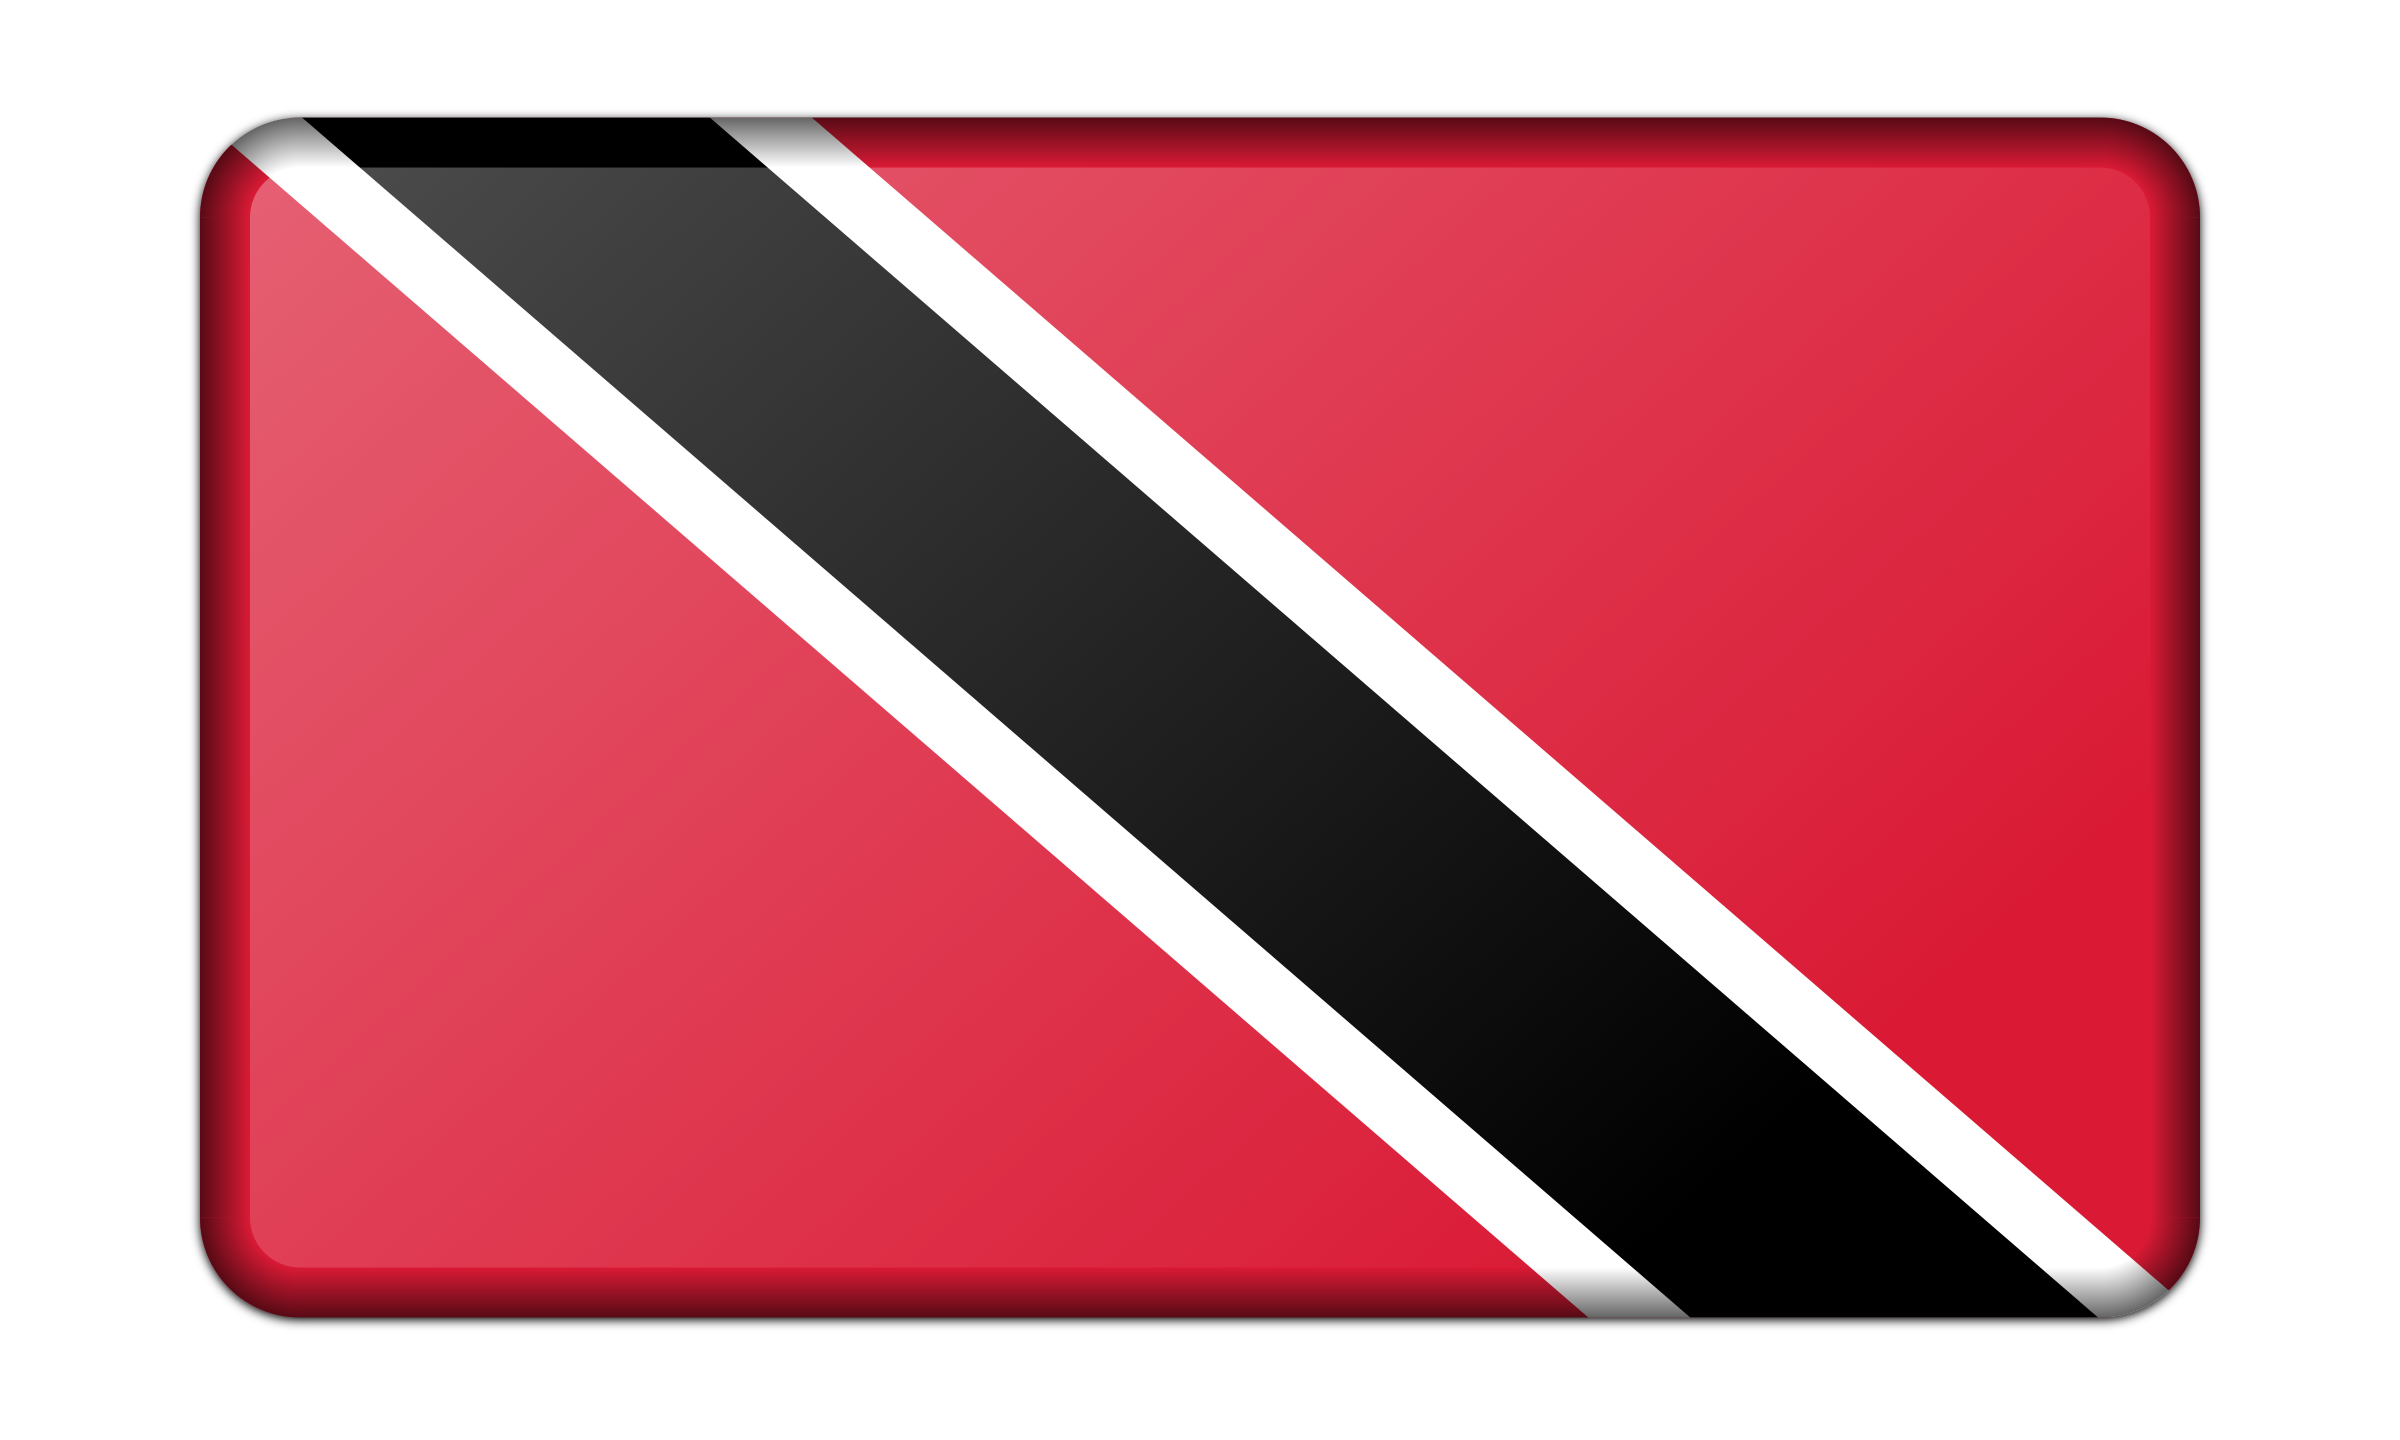 Flag of Trinidad and Tobago (bevelled) by Firkin